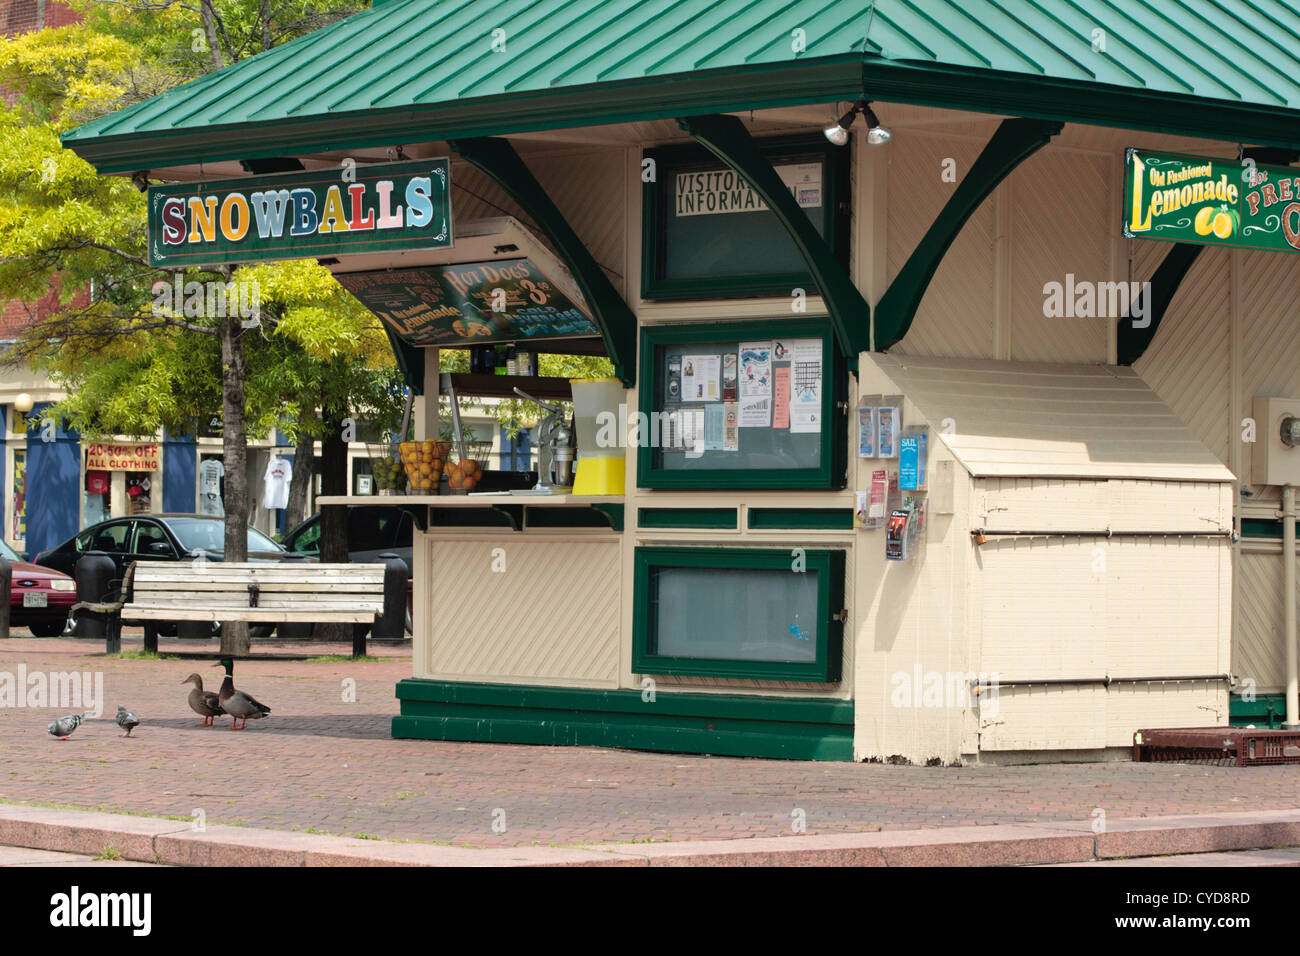 outdoor concession stand selling drinks and snacks Baltimore, Maryland - Stock Image